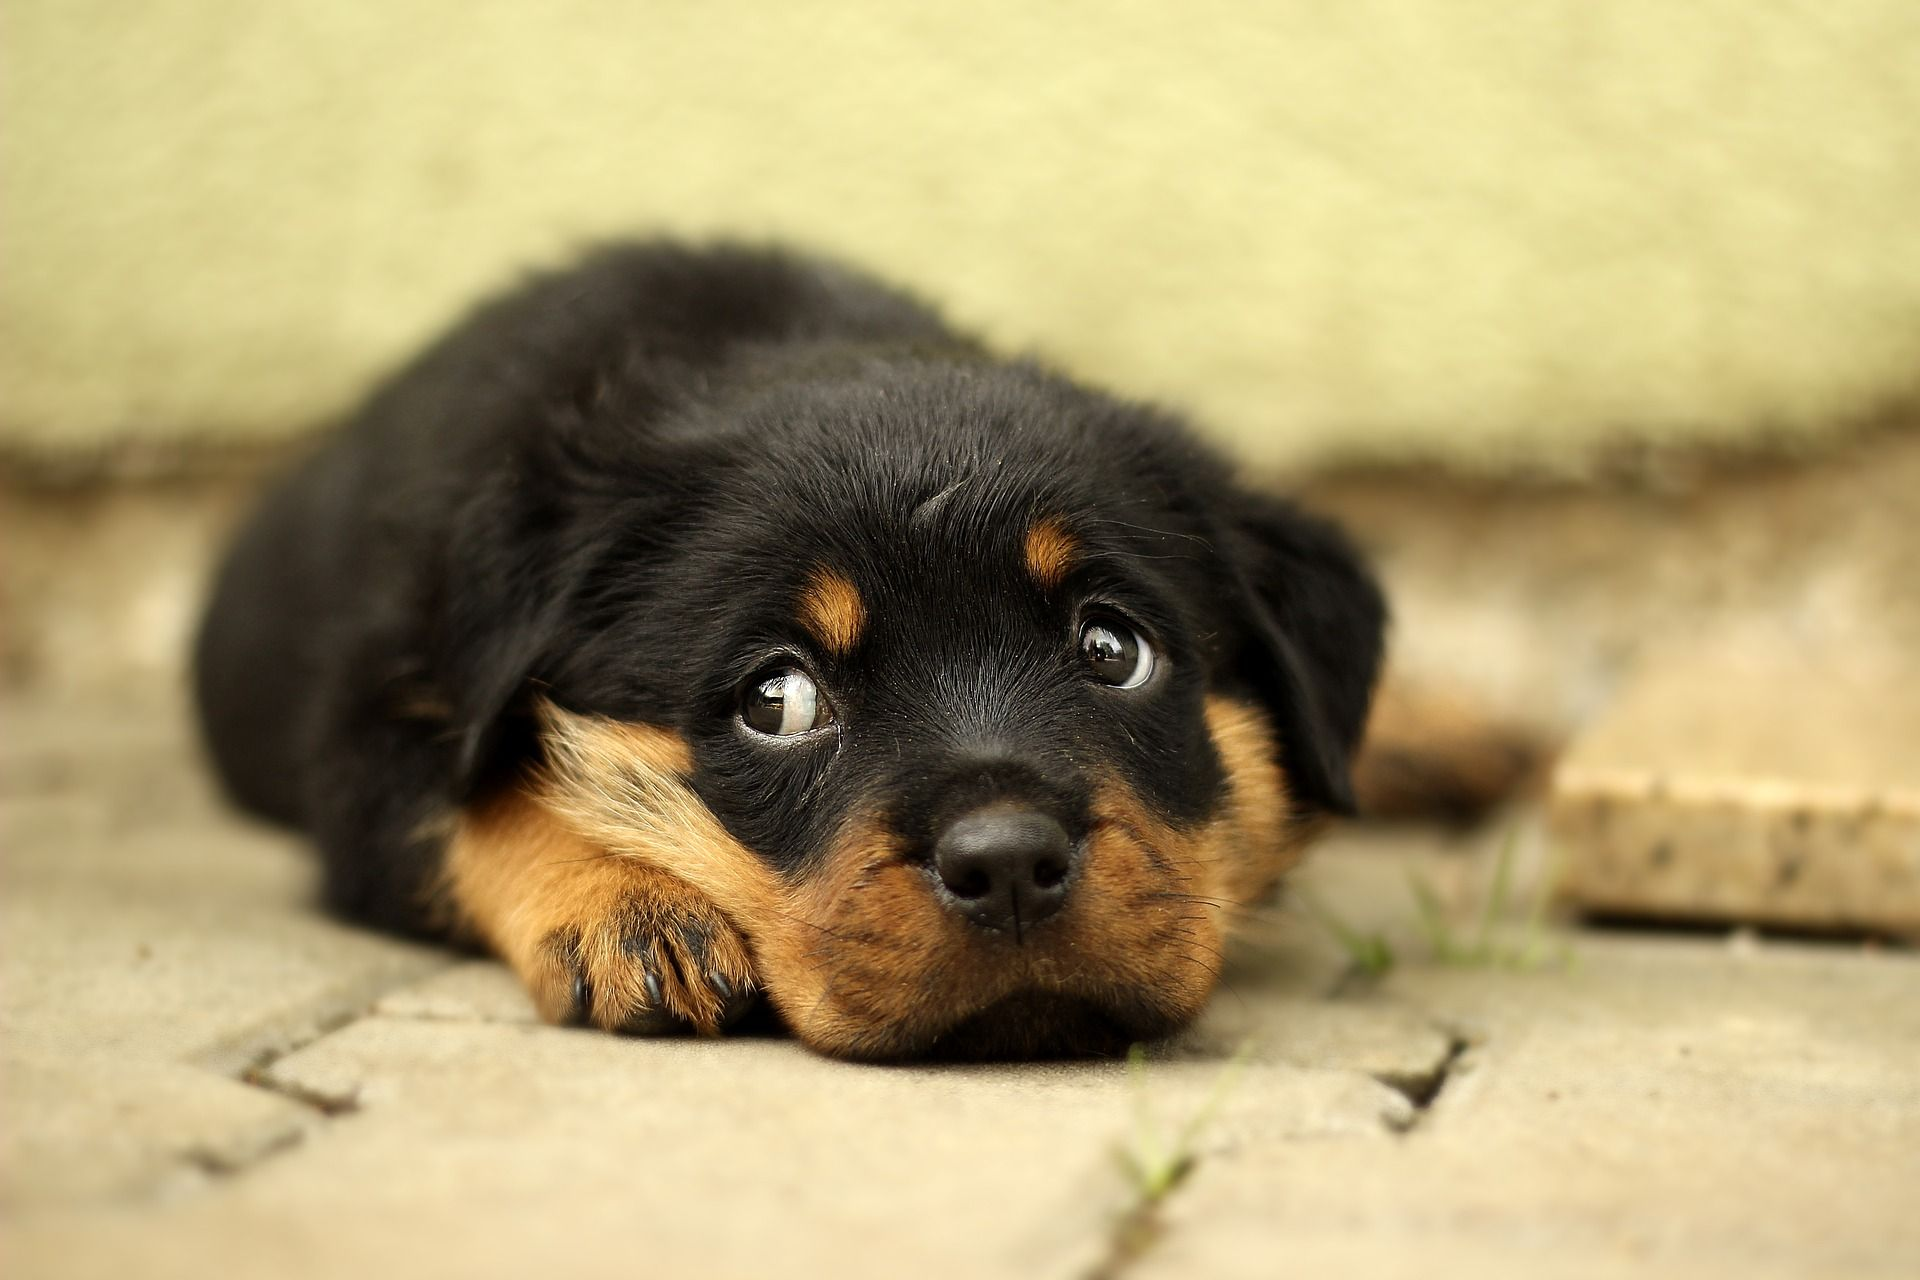 In 2021 Indiana Animal Shelters Will Spayneuter All Animals Before